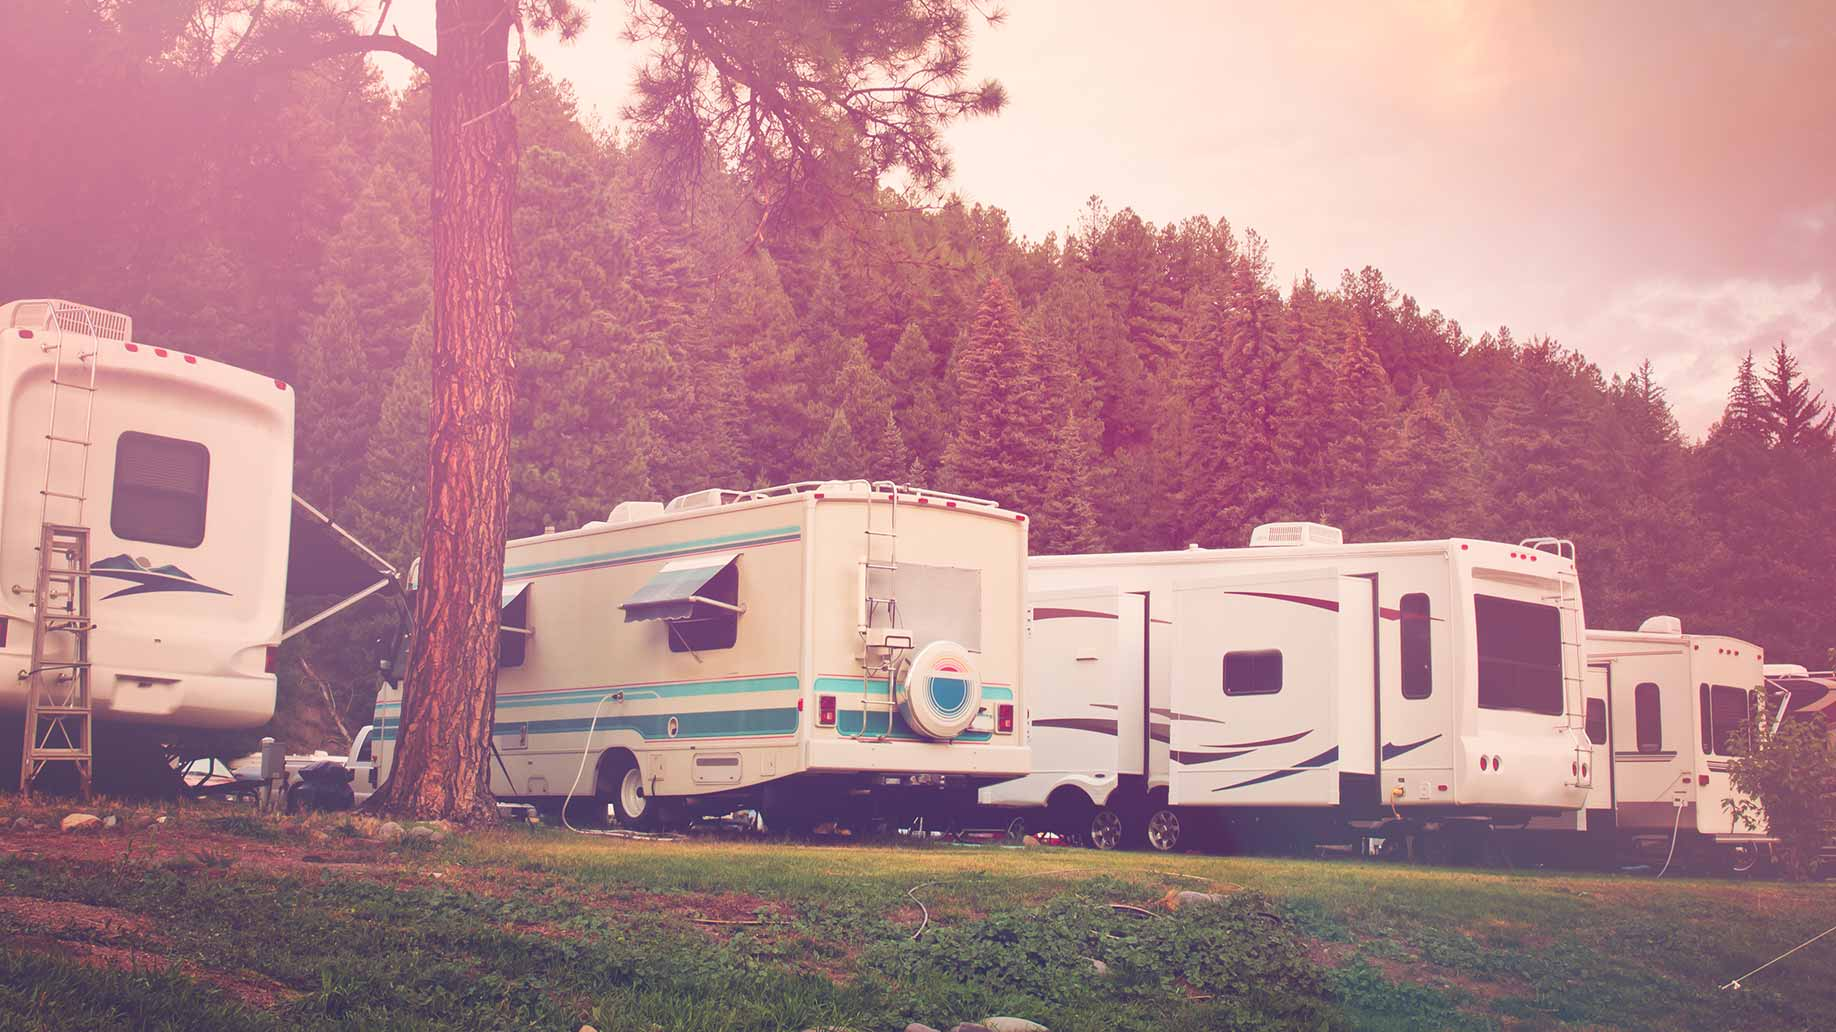 several rvs parked at a campground near a forest